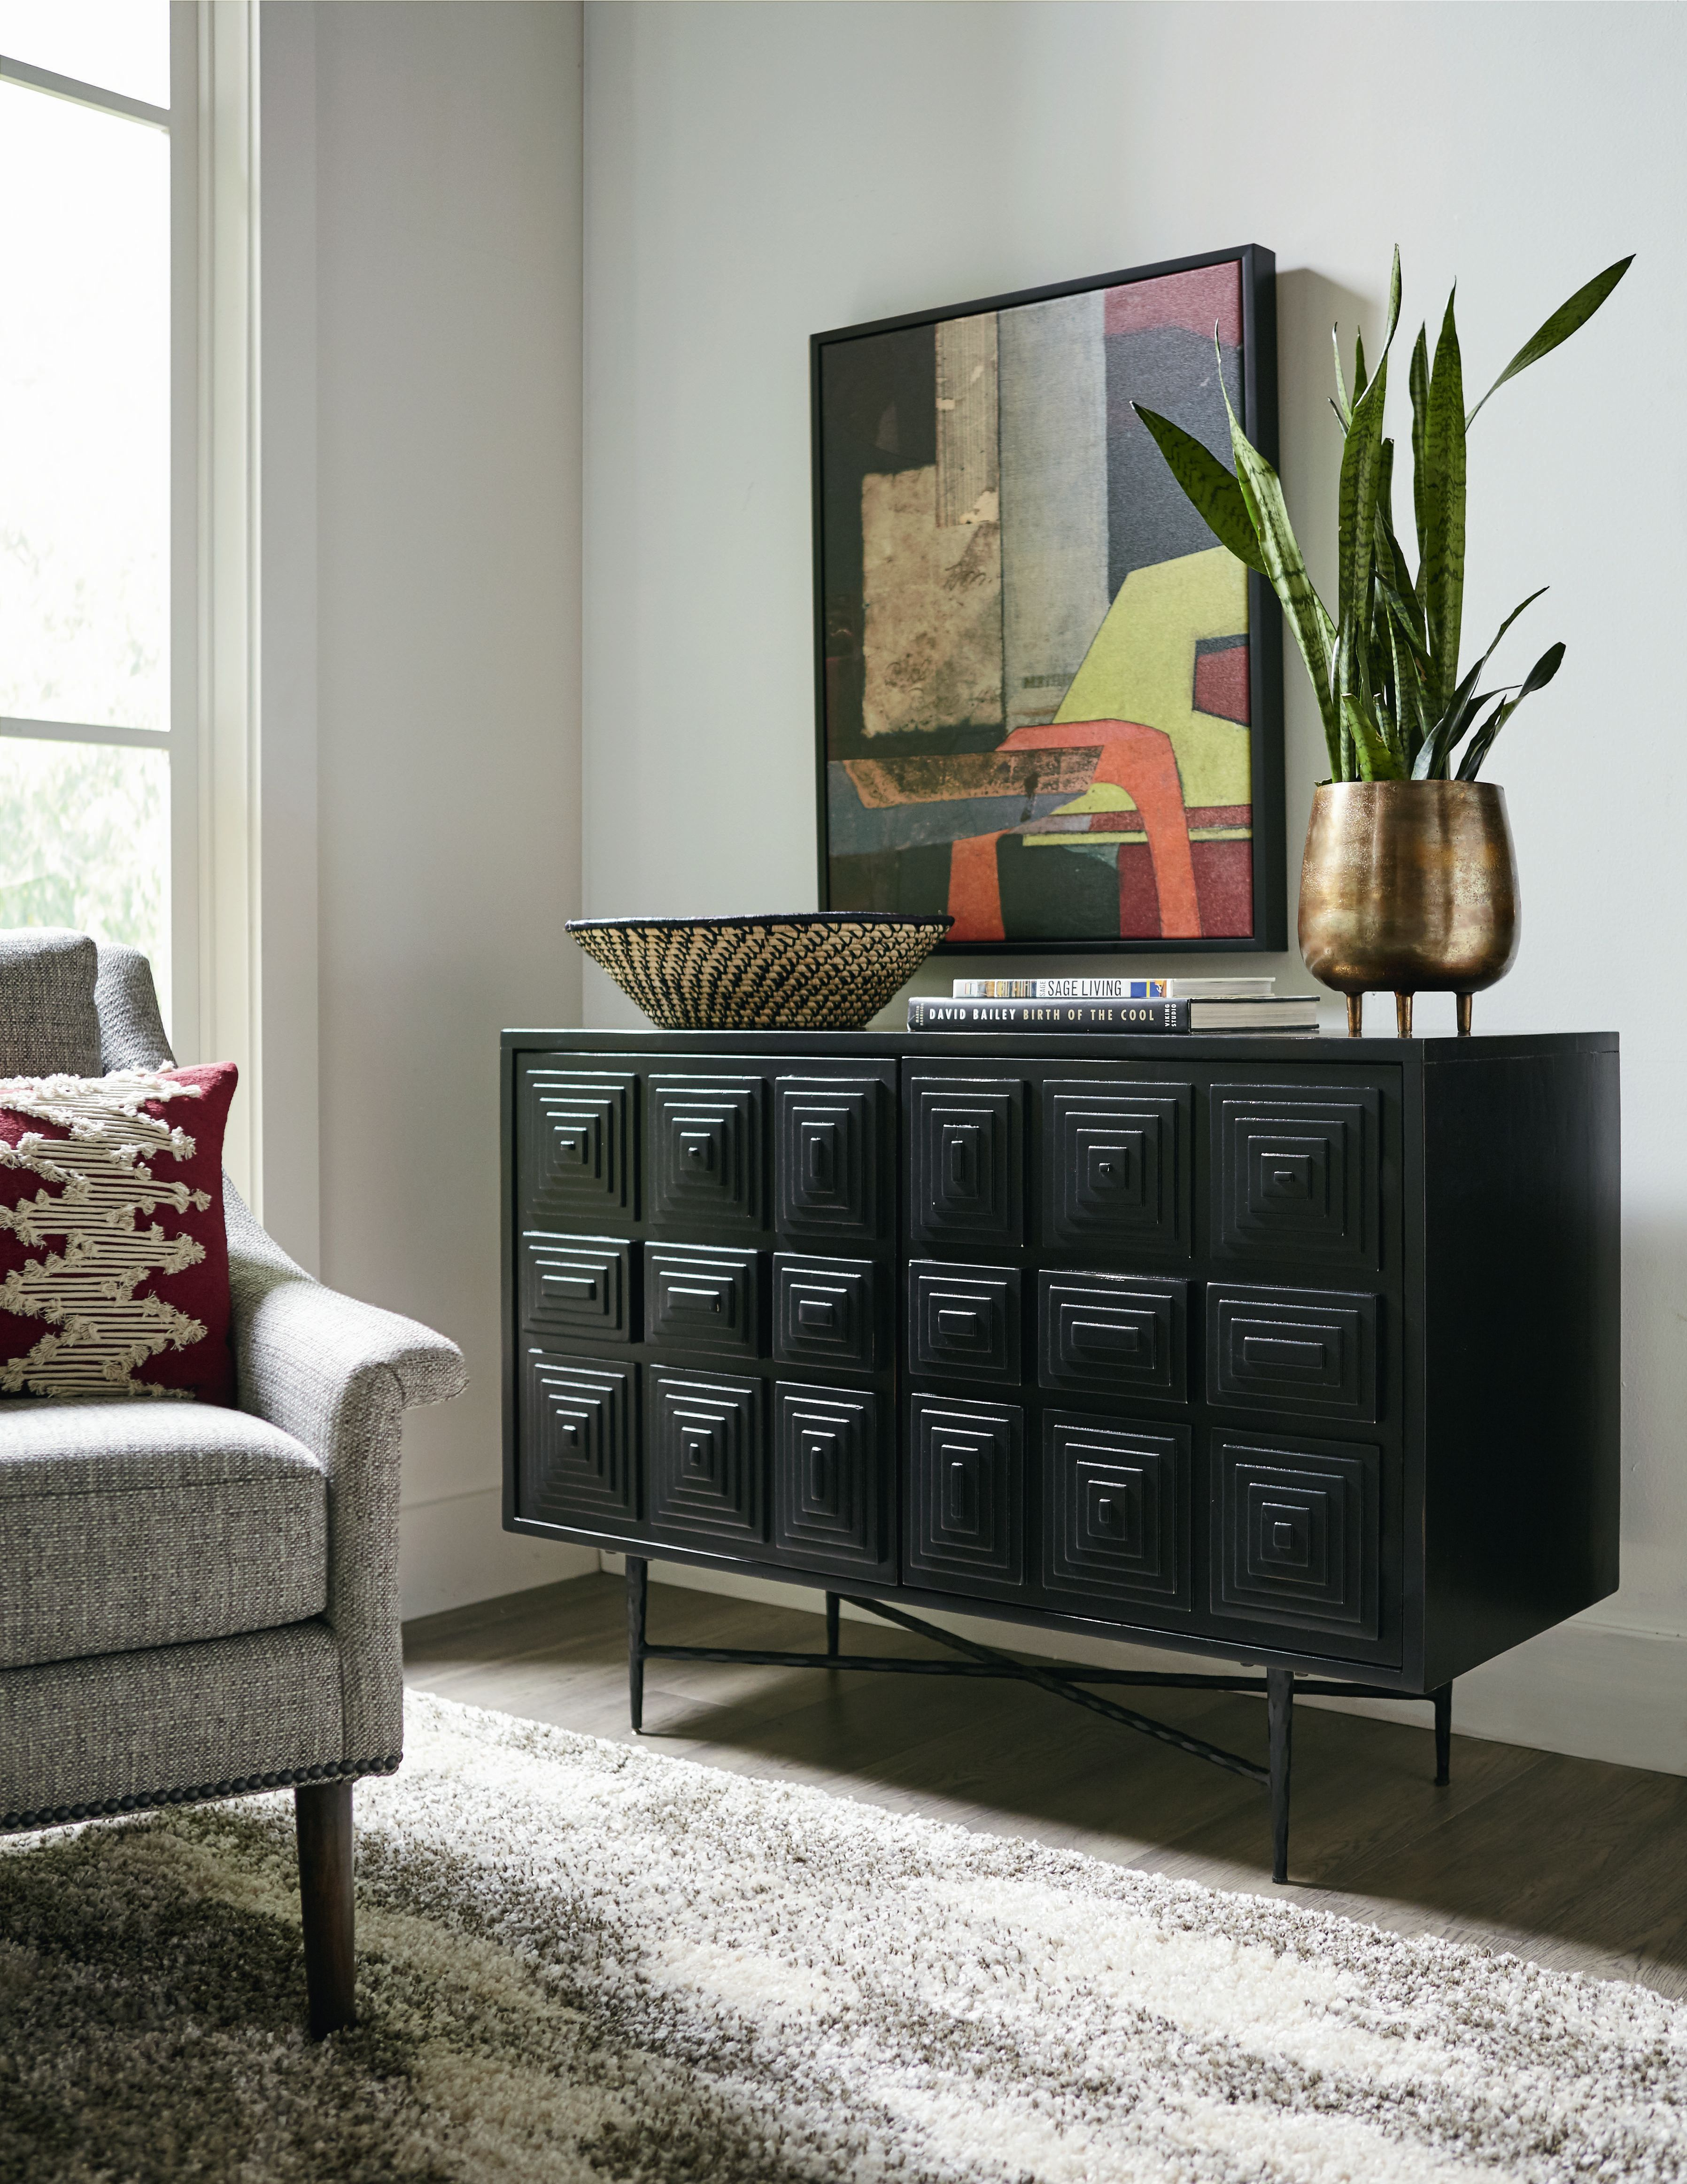 Top 10 Products Home Decorating Bloggers Love Decor Furniture Living Room Furniture